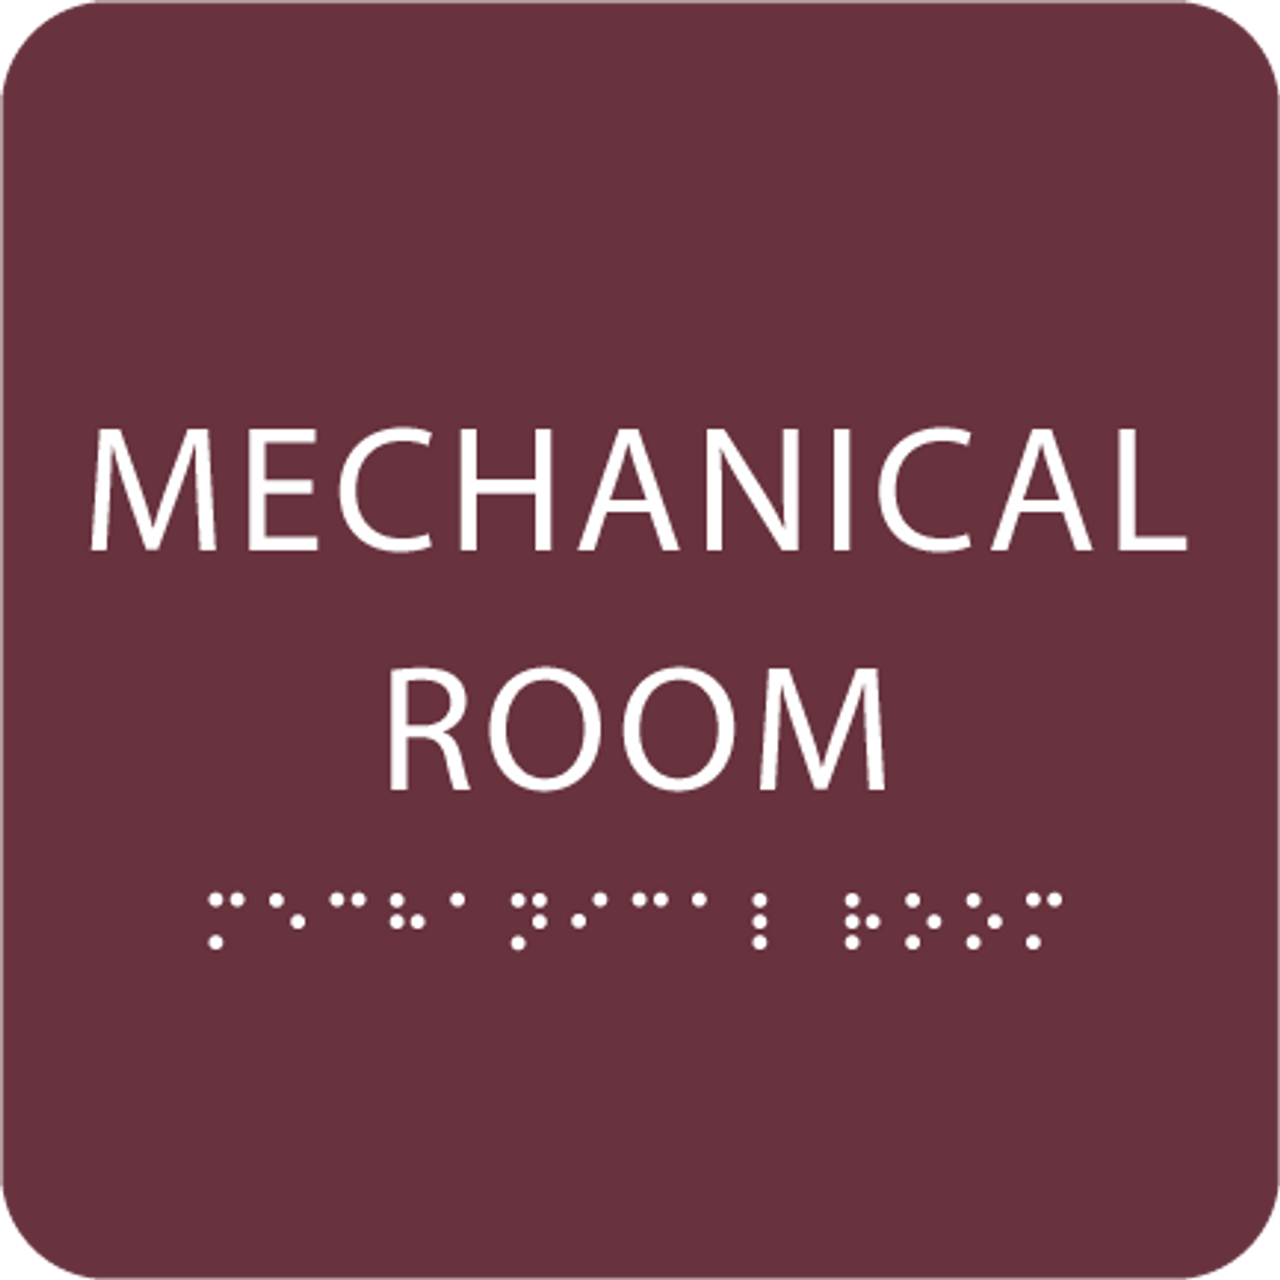 Burgundy Tactile Mechanical Room Sign